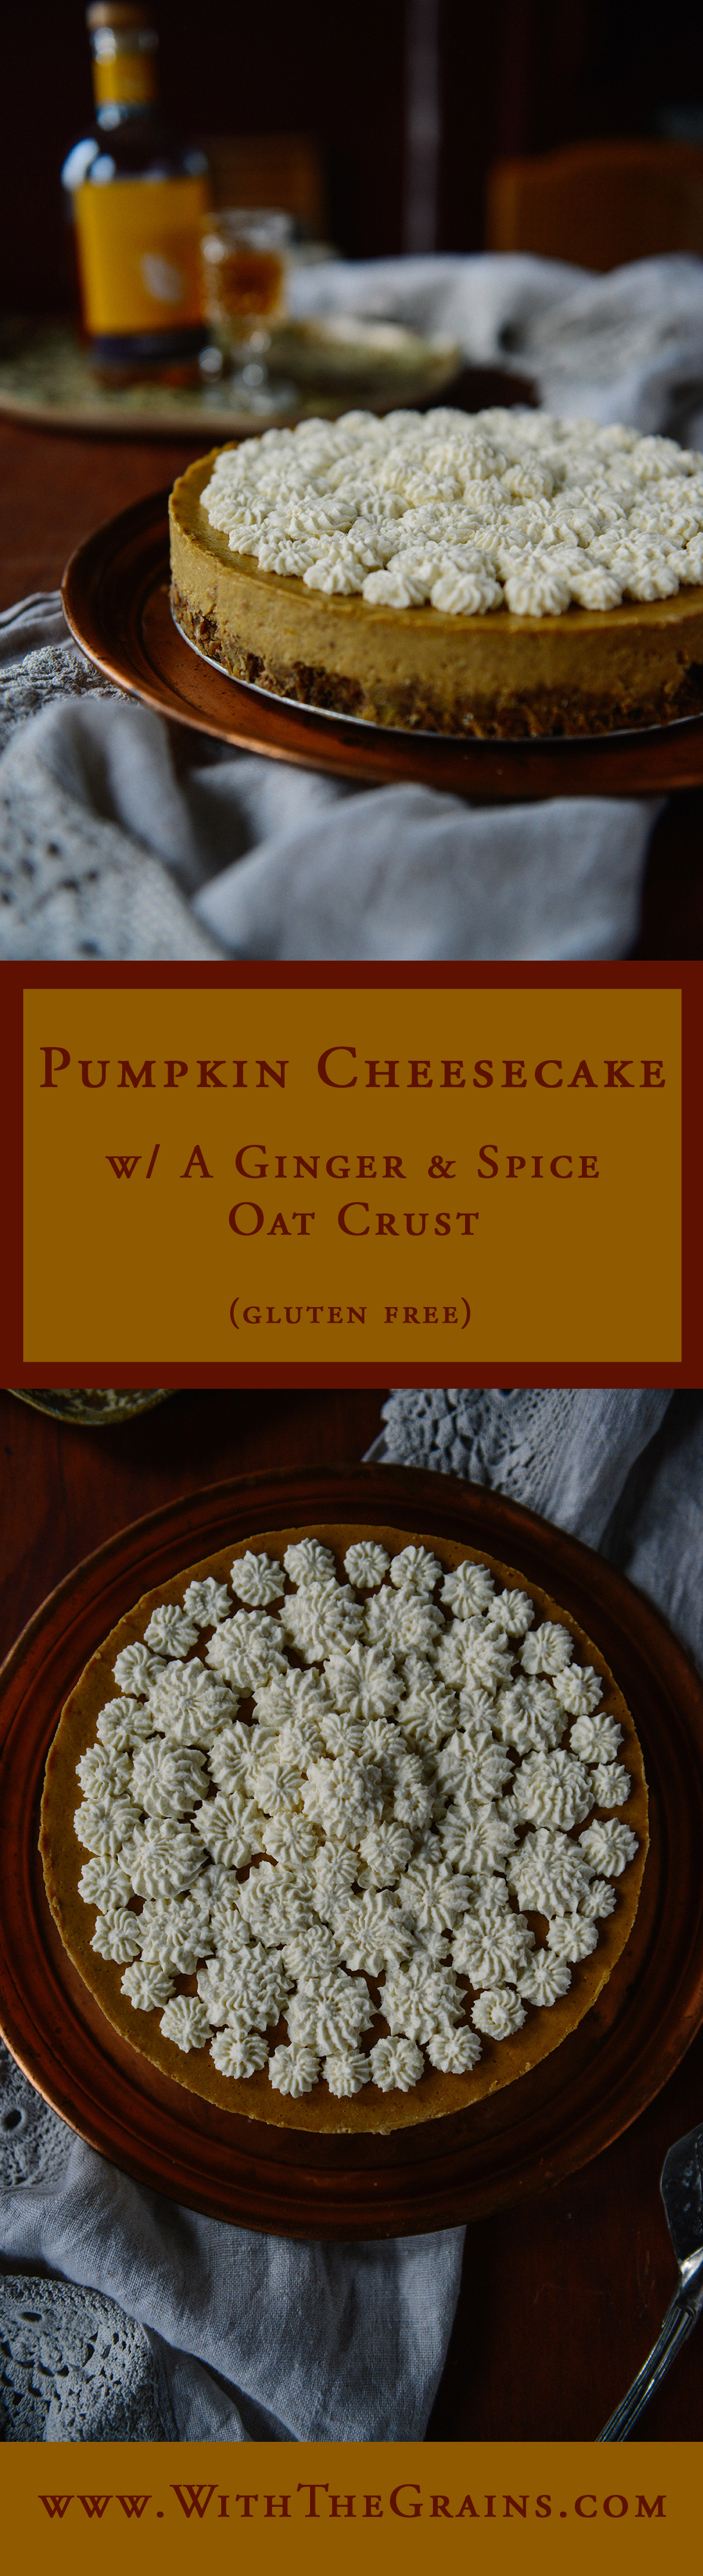 Pumpkin Cheesecake w/ Ginger & Spice Oat Crust // www.WithTheGrains.com